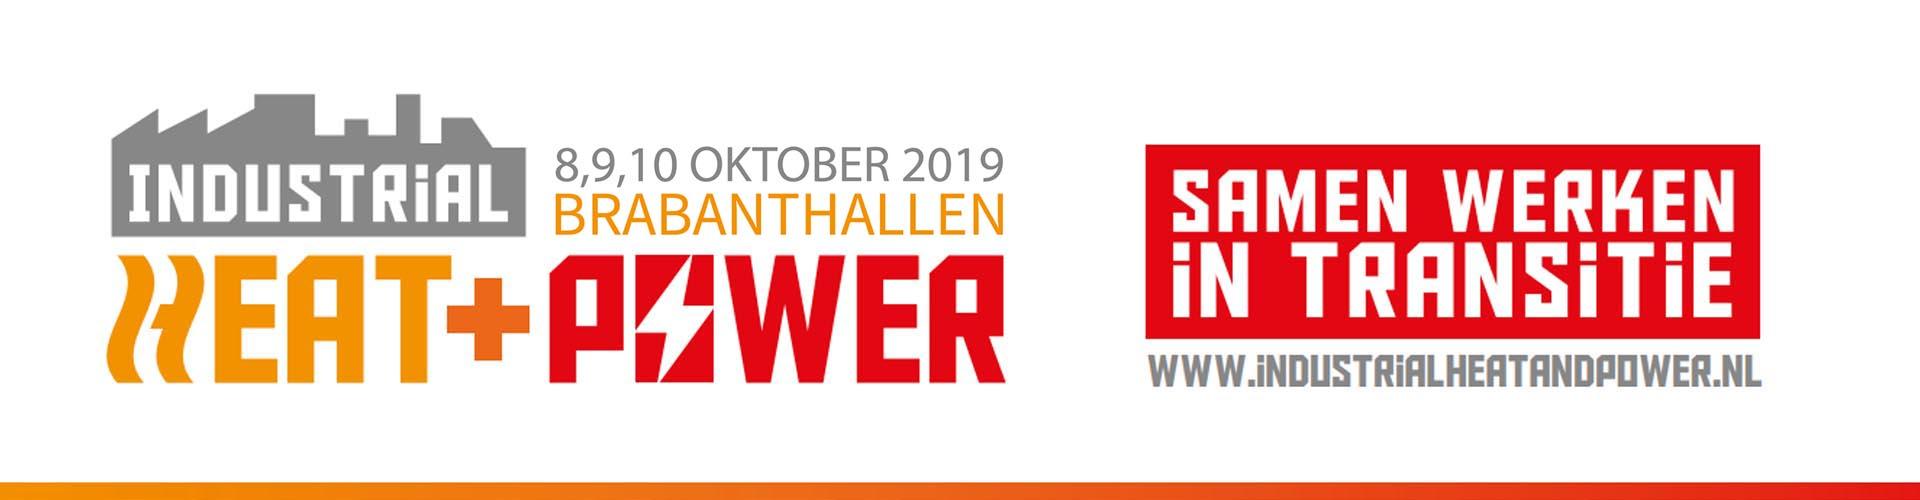 Elco Burners INDUSTRIAL HEAT & POWER BEURS (DEN BOSCH - 8,9,10 OKTOBER)